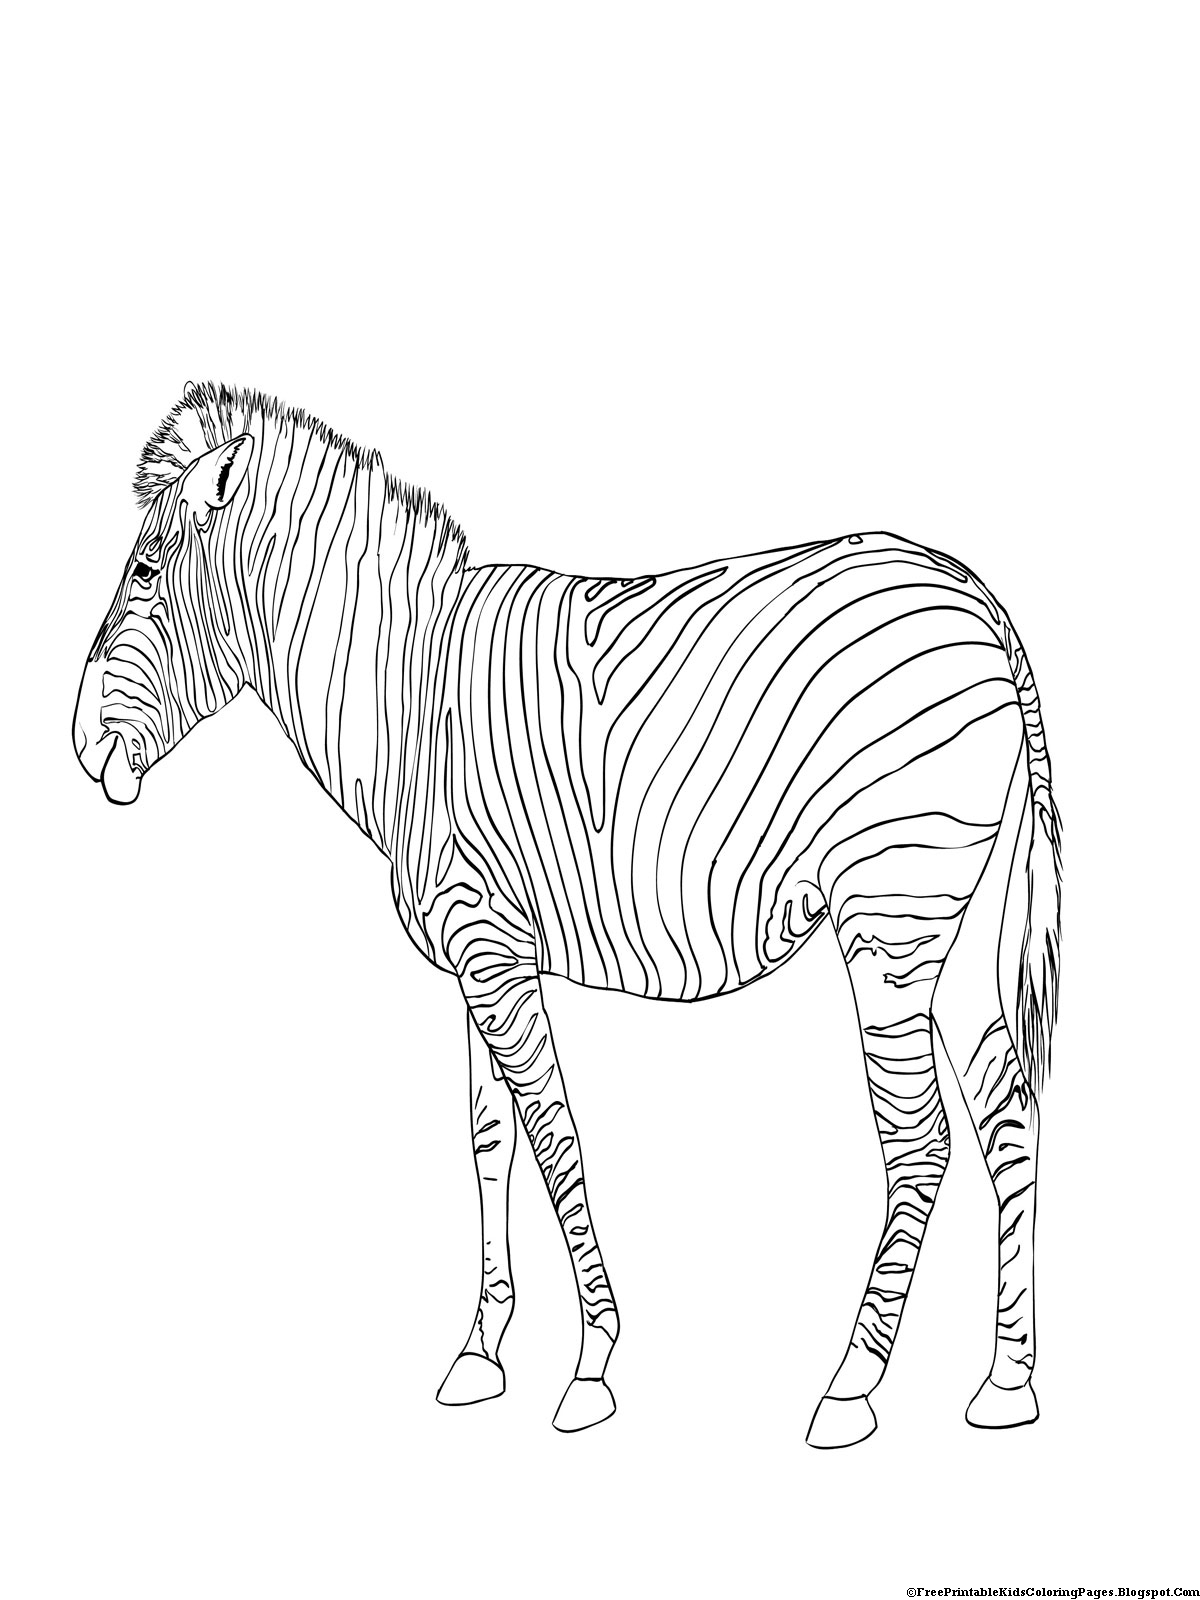 coloring zebra pictures zebra coloring pages free printable kids coloring pages pictures zebra coloring 1 1